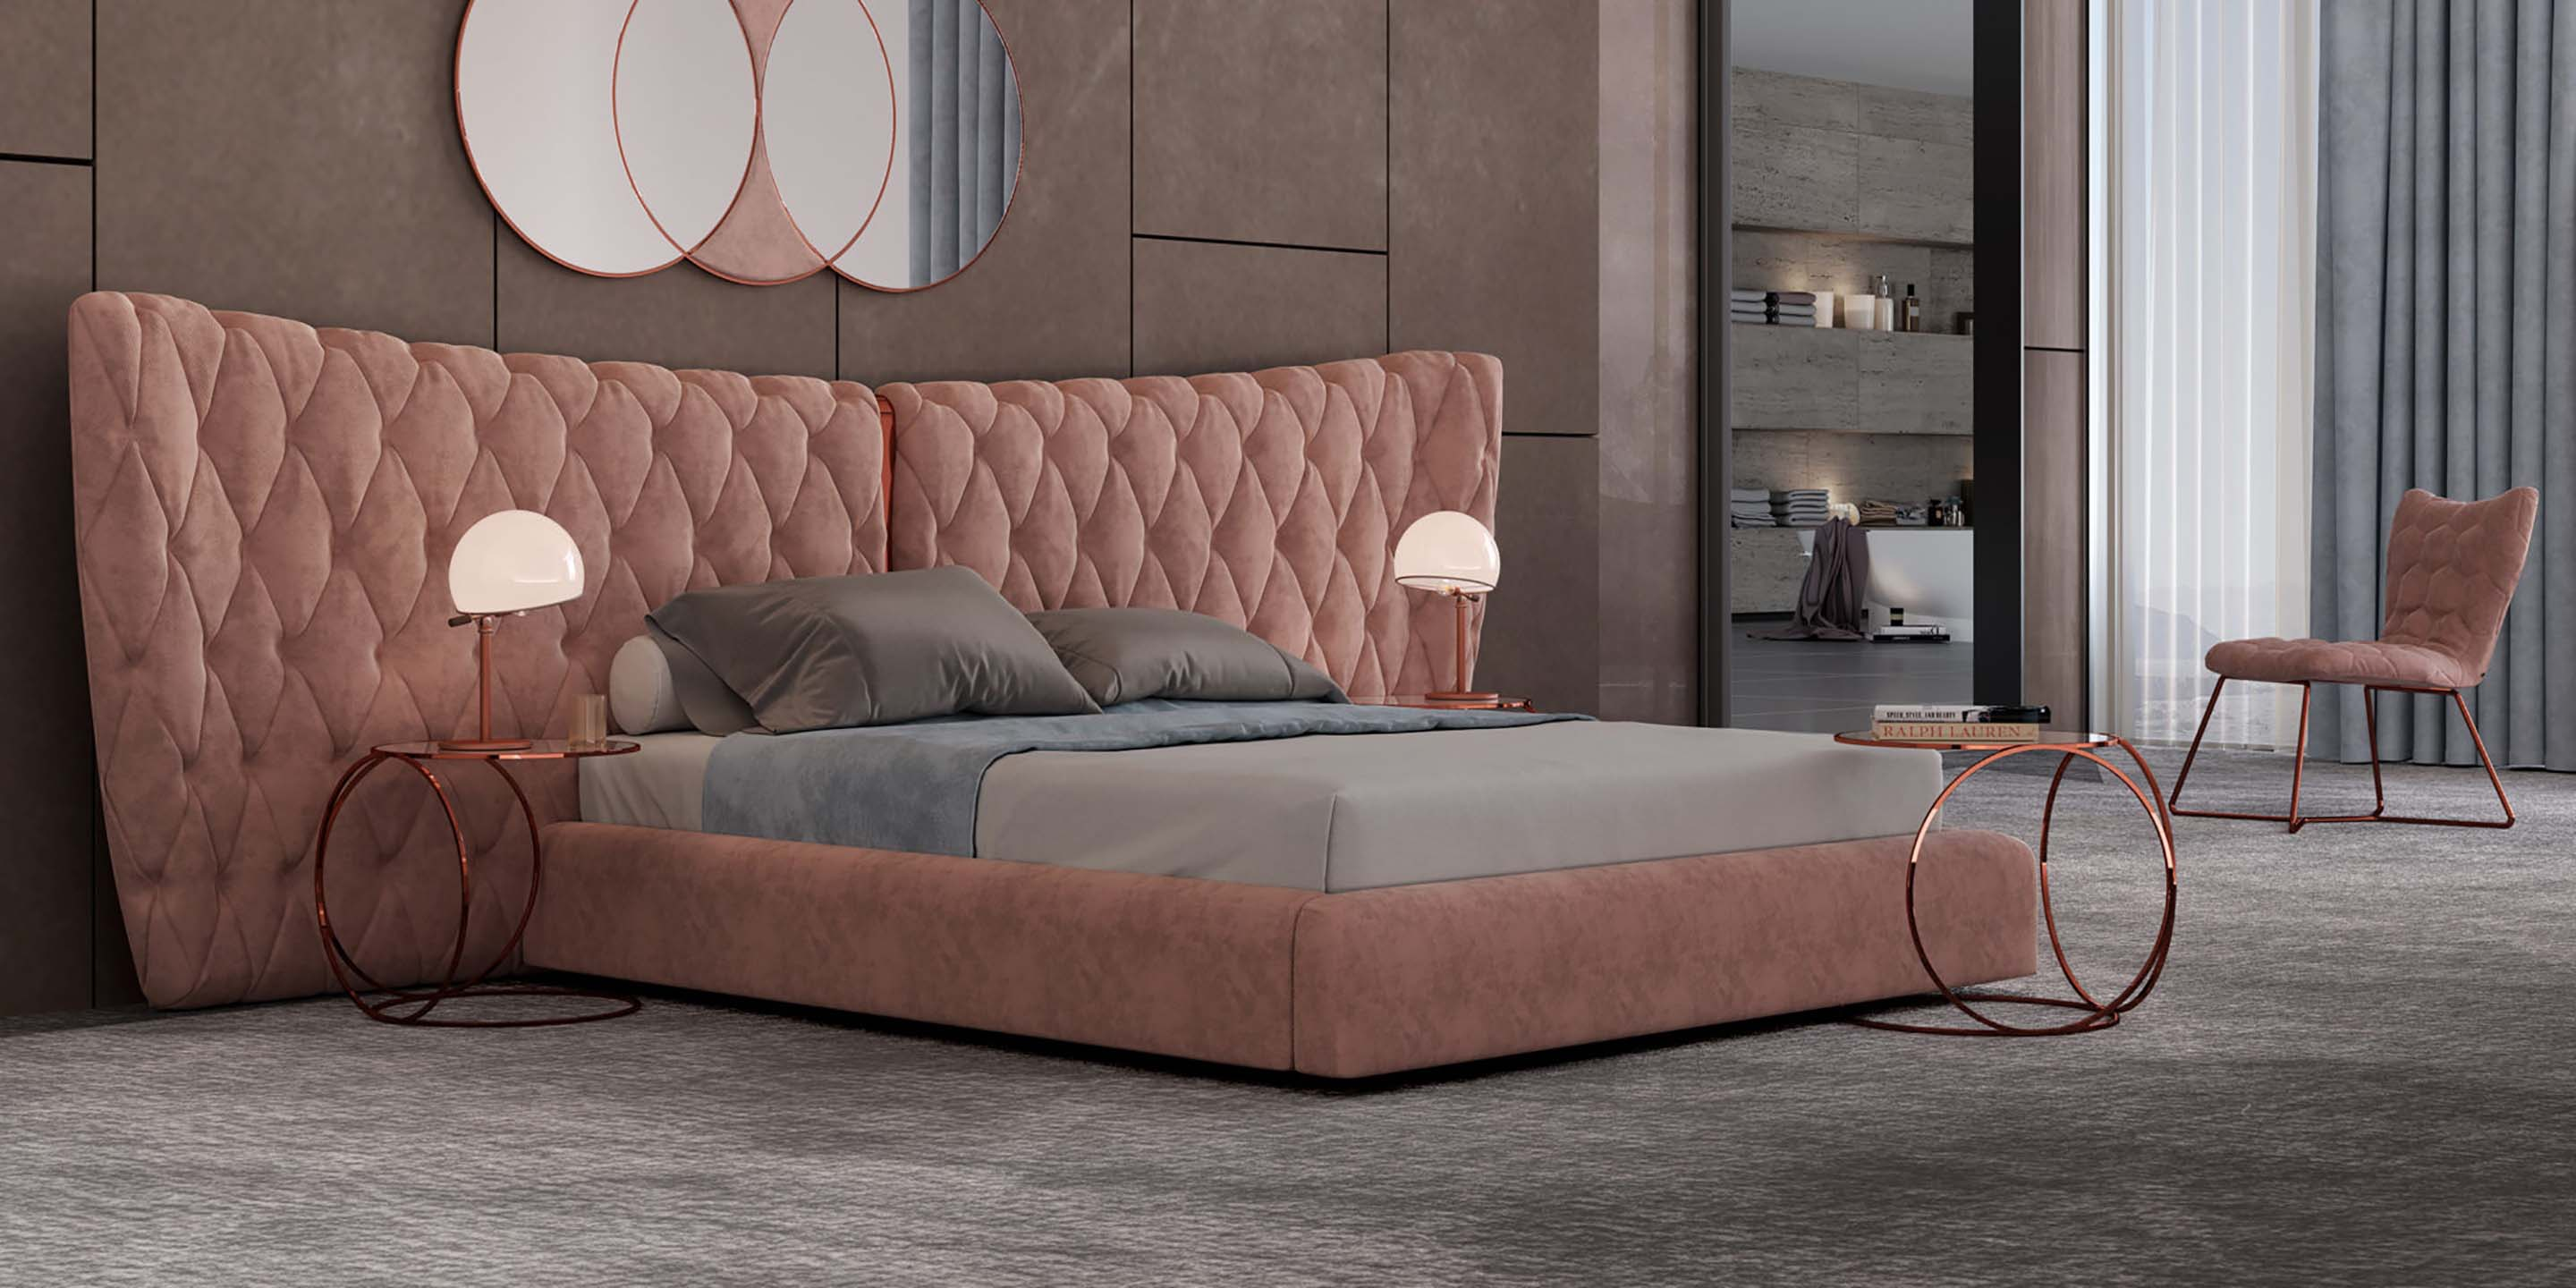 Home domkapa comfort furniture for your home for Muebles casal valencia